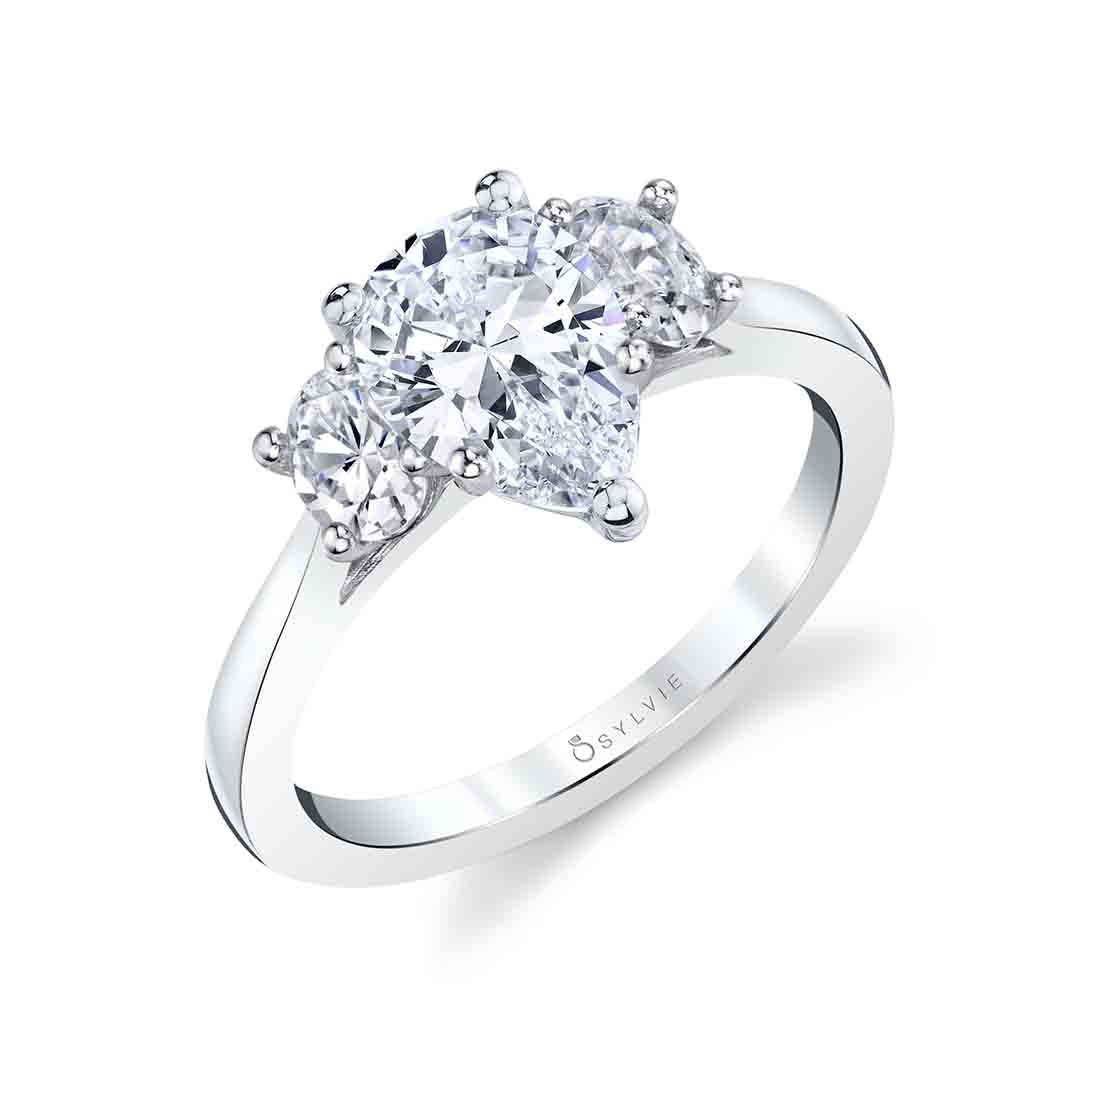 profile view of a cushion cut 3 stone ring